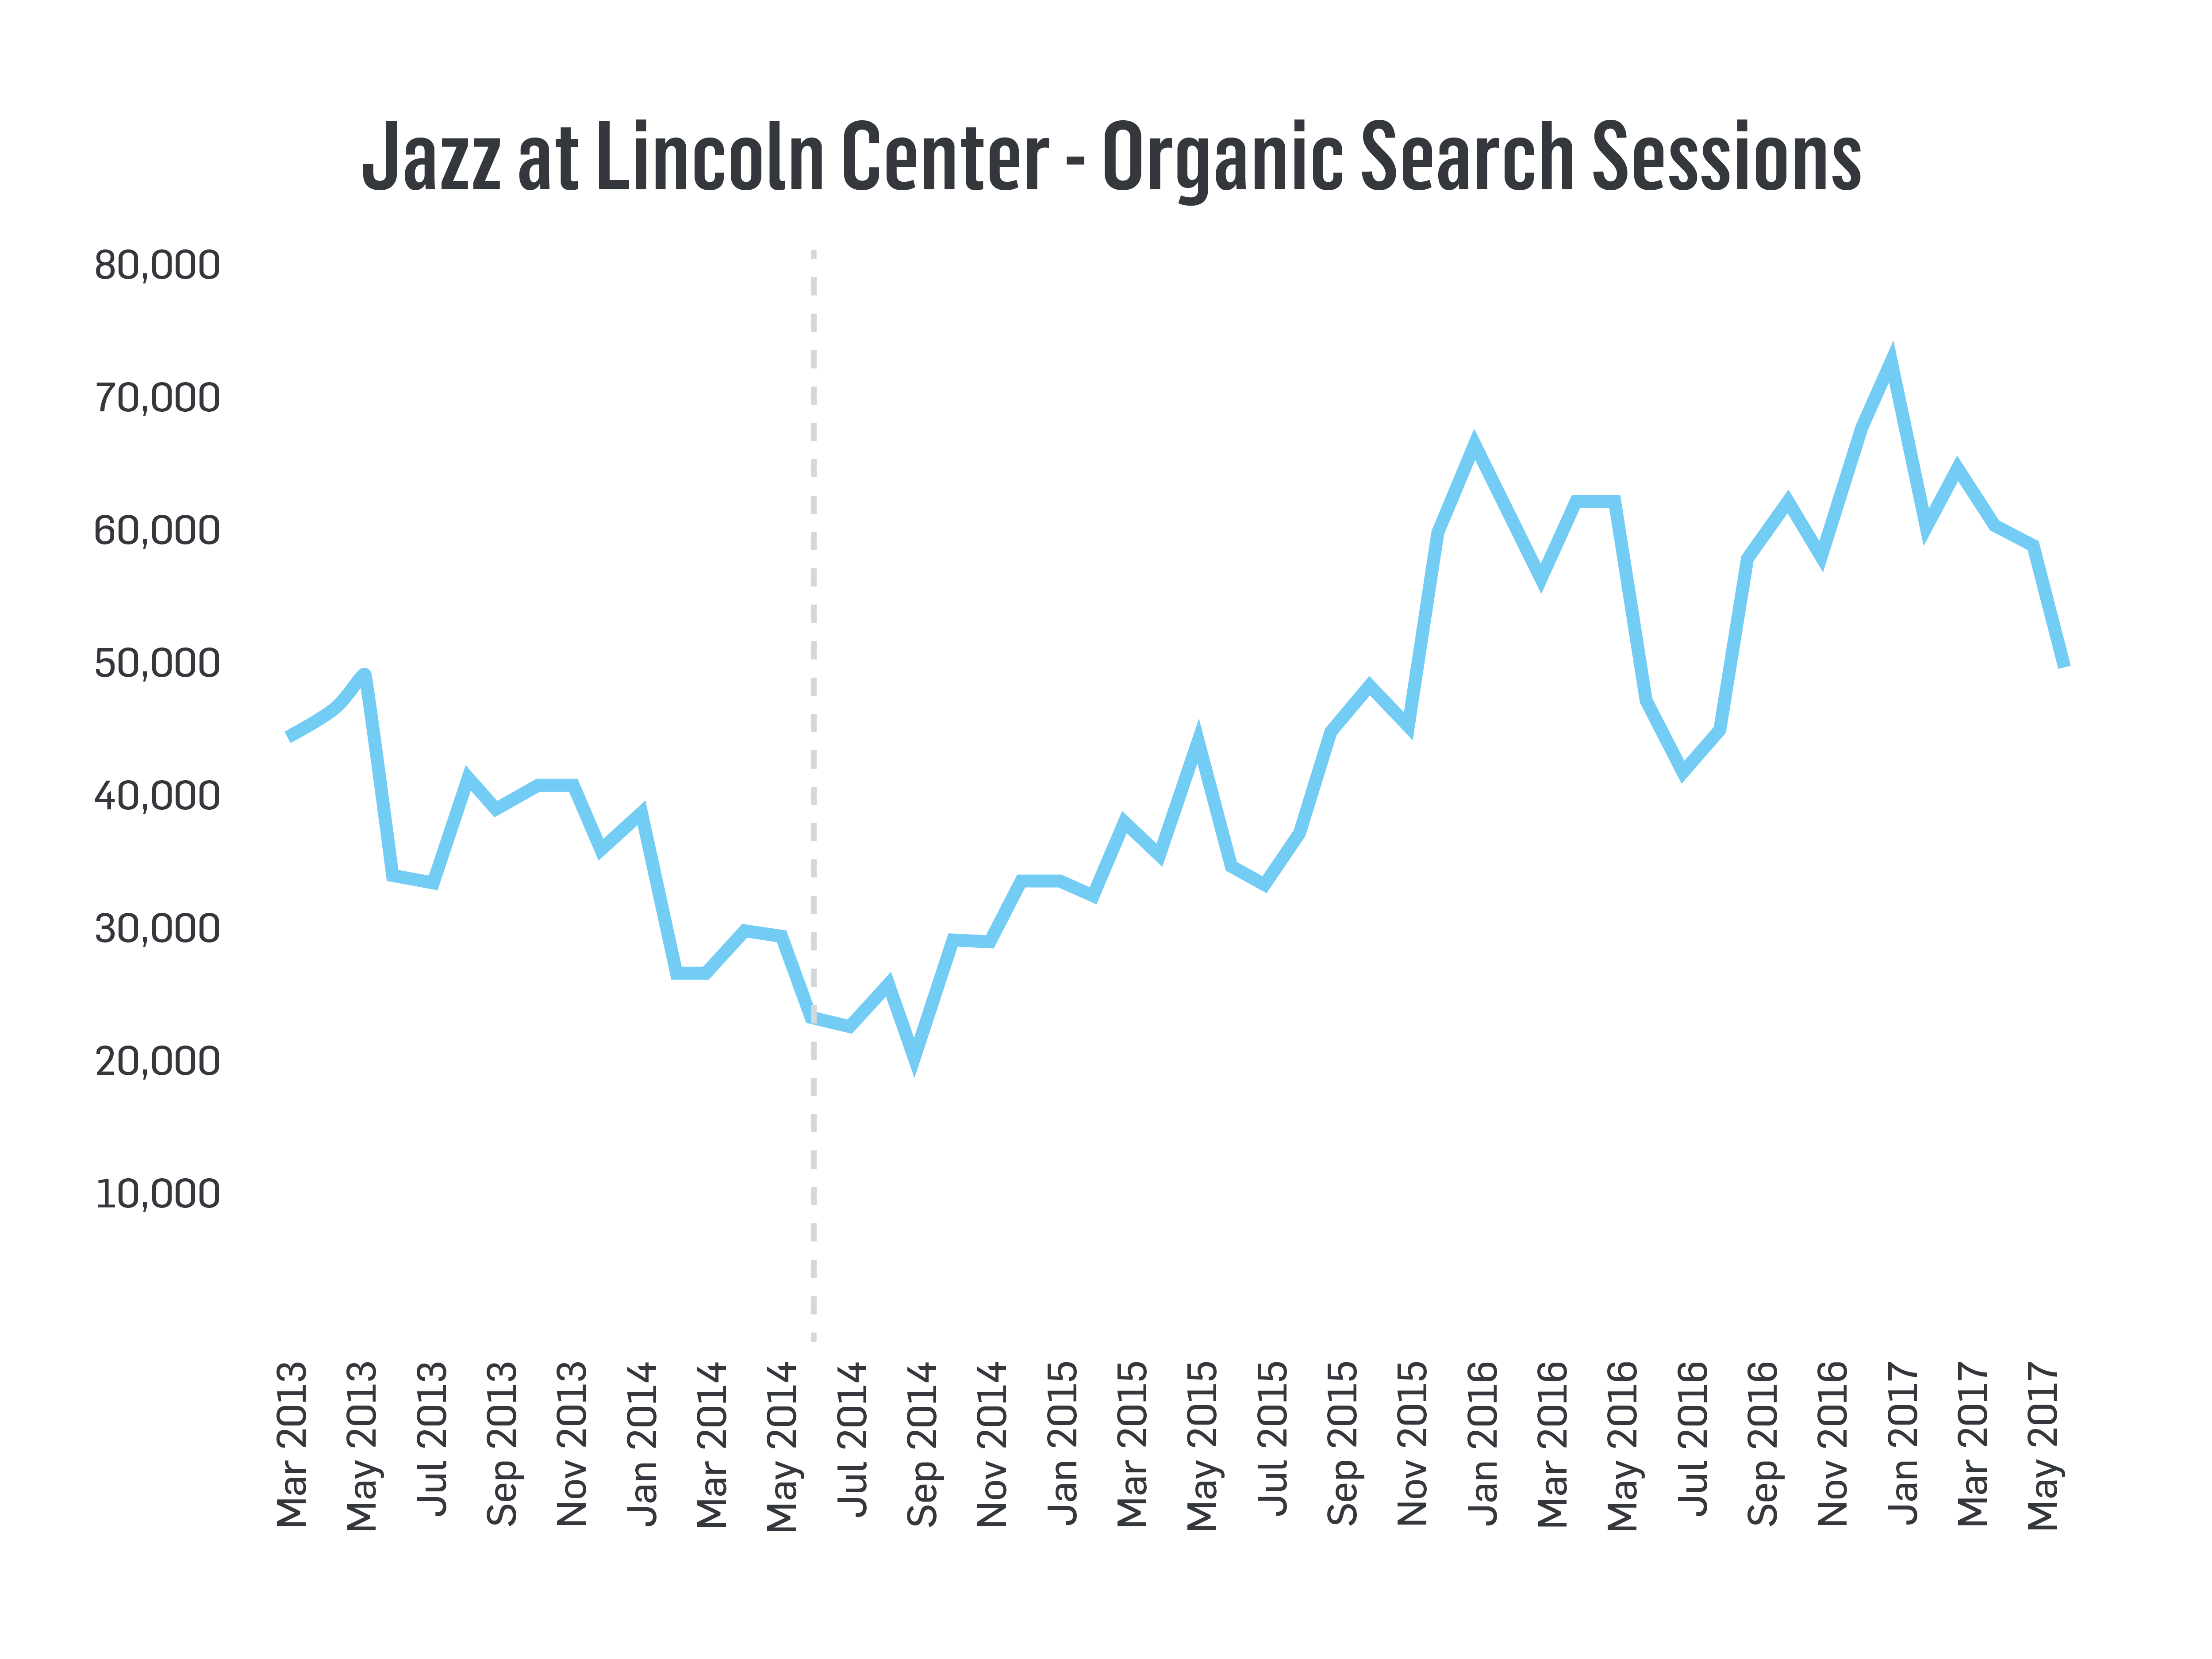 Jazz at Lincoln Center Organic Search Sessions Line Graph